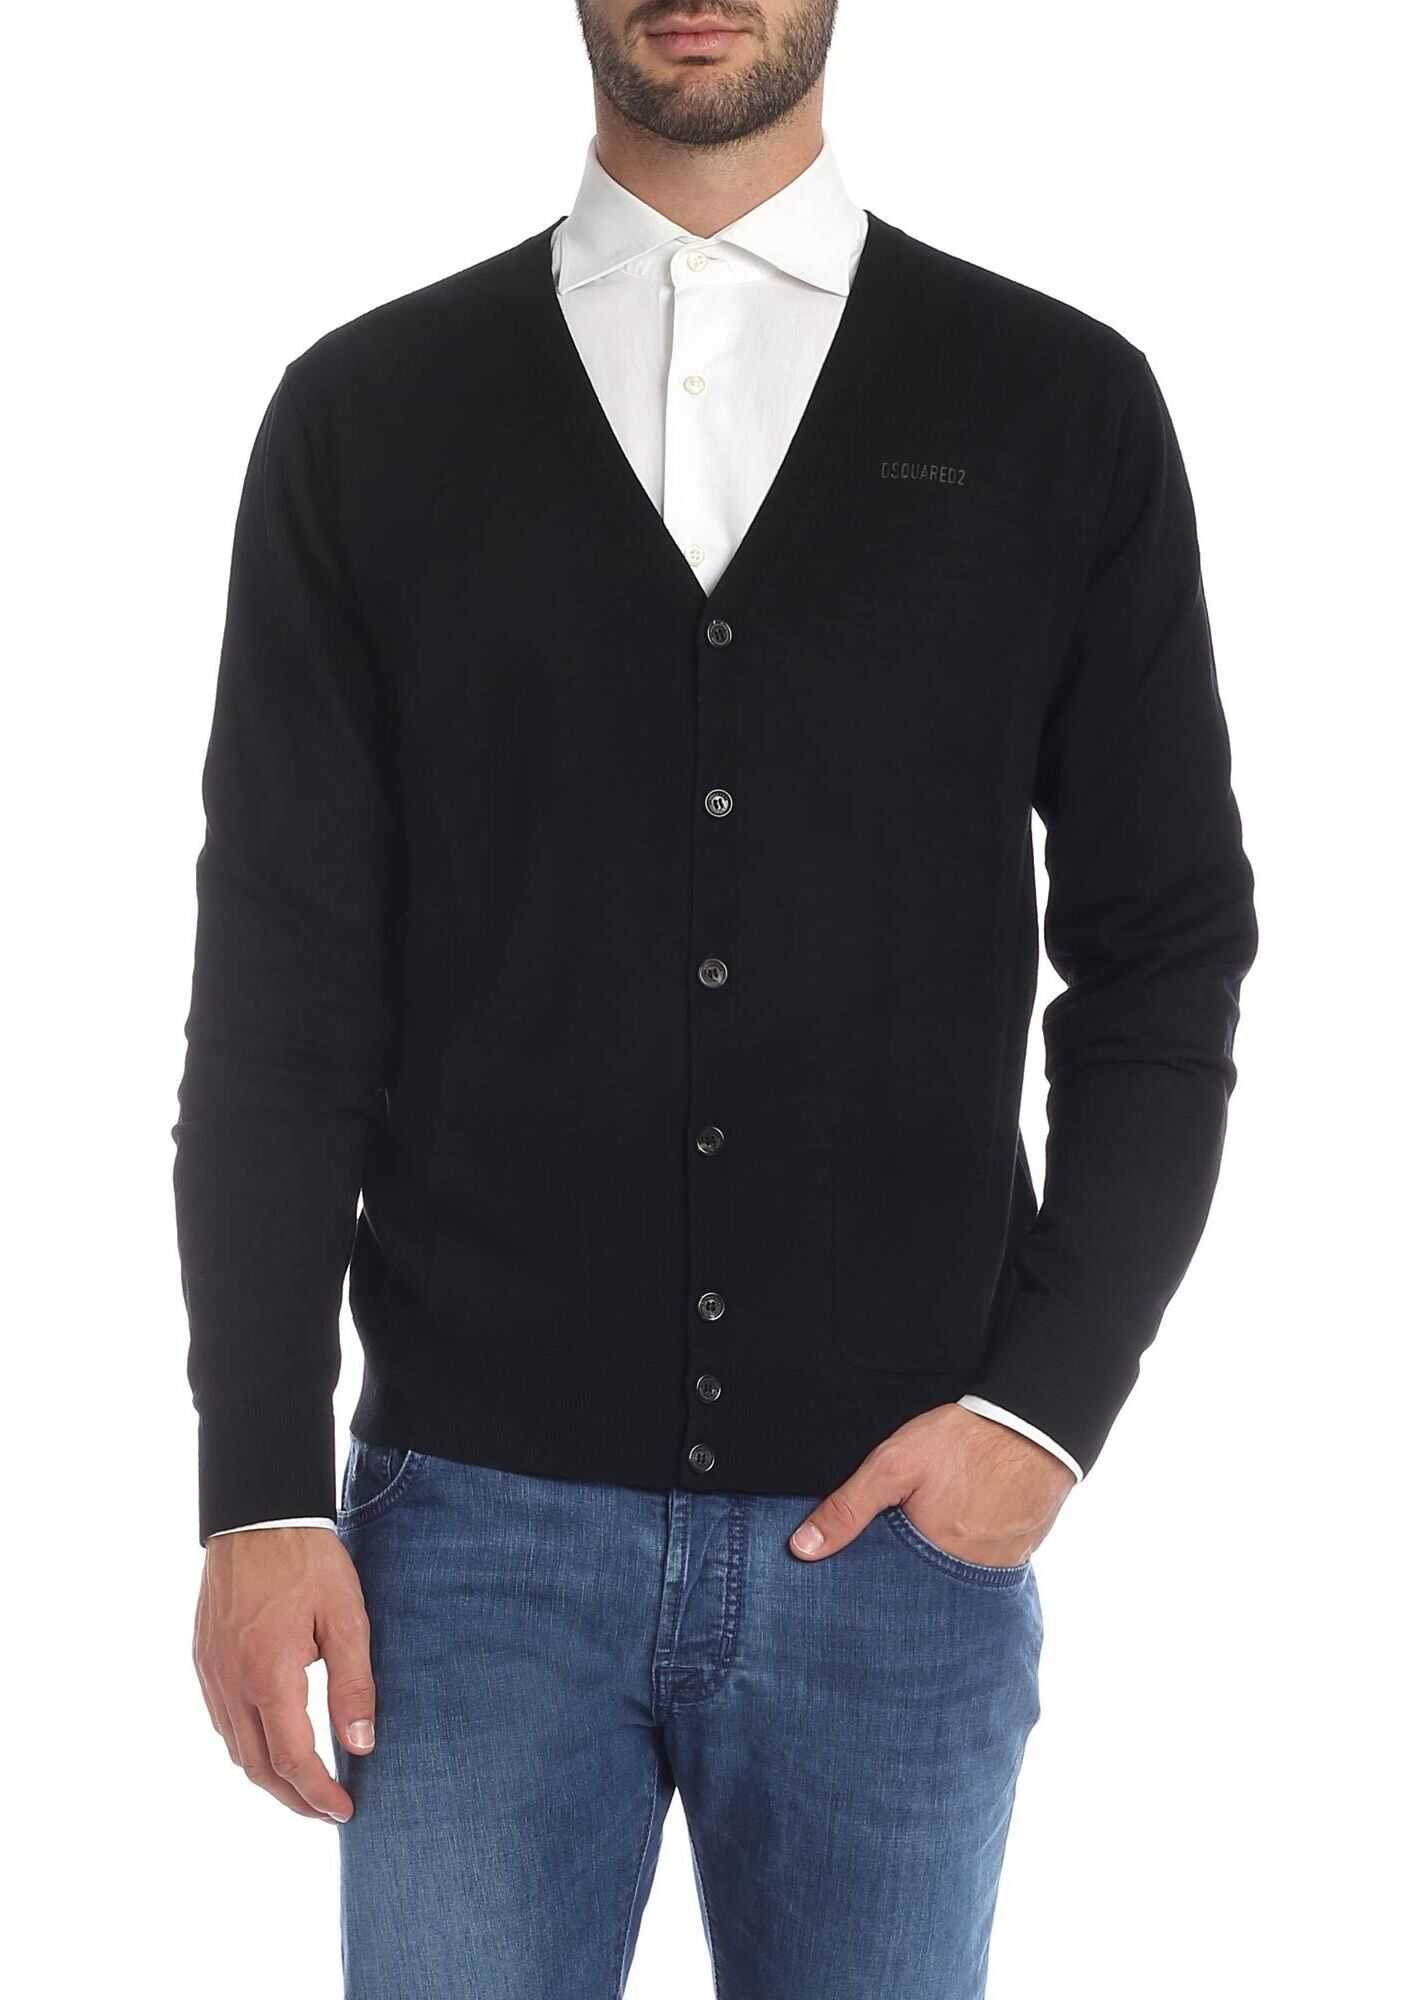 DSQUARED2 Black Cardigan With Pockets Black